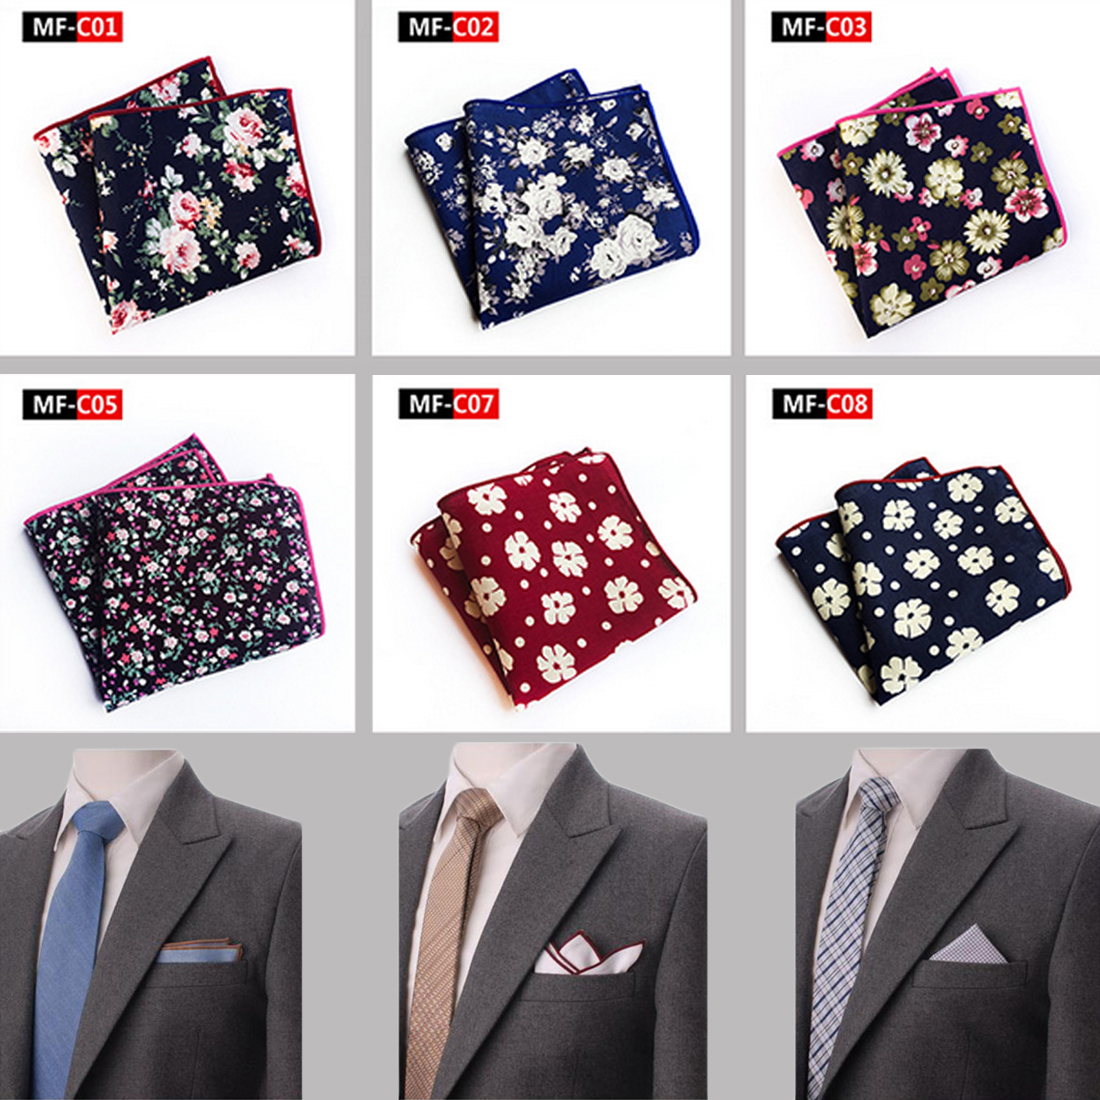 New Men's Cotton Pocket Square Western Style Floral Handkerchief For Suit Pocket Wedding Square Paisley 25x25cm